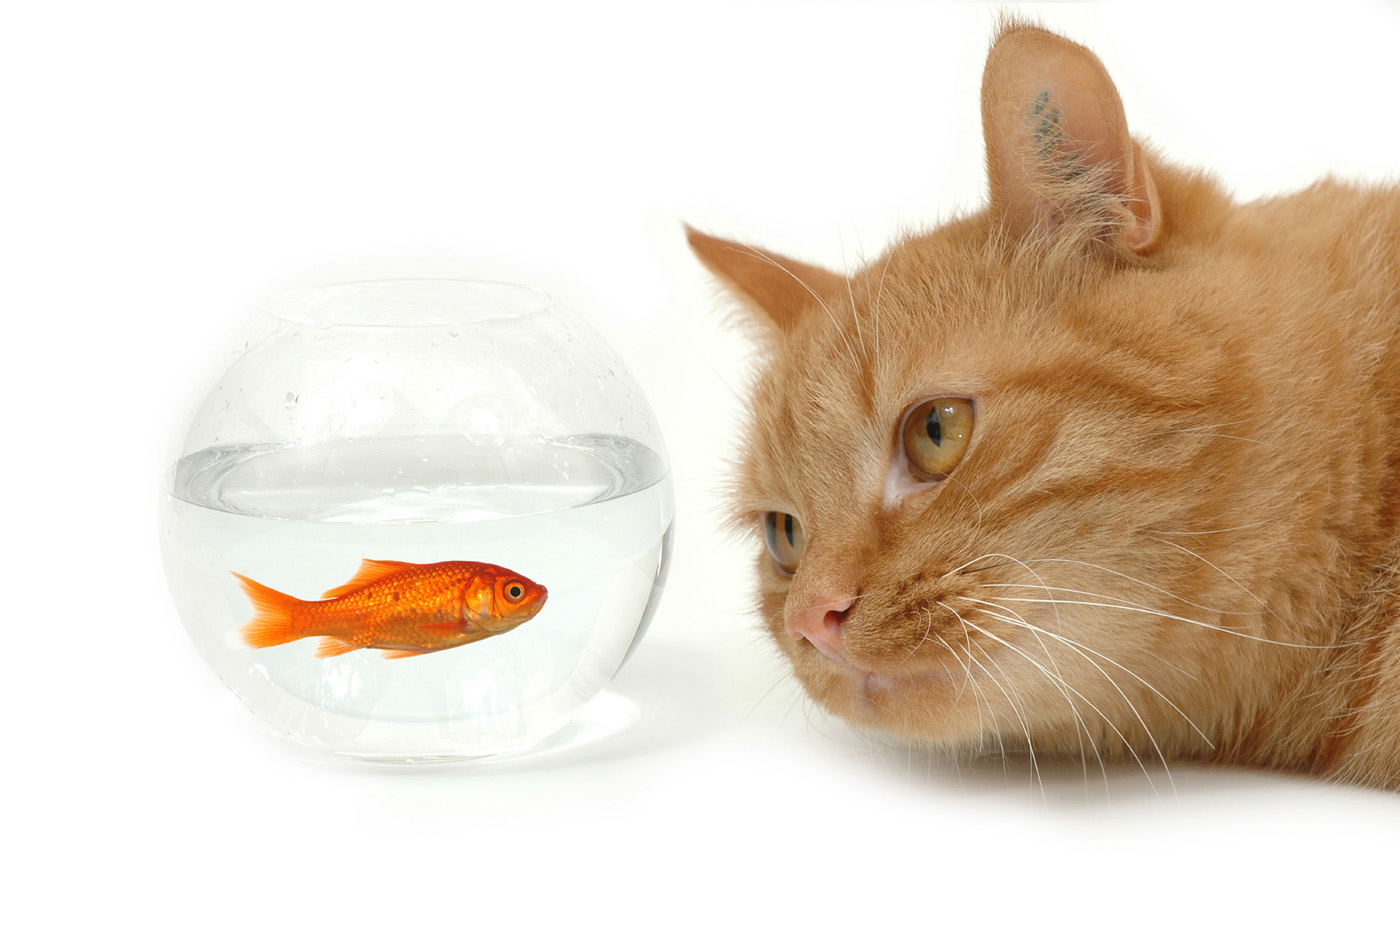 Cat and goldfish 3062